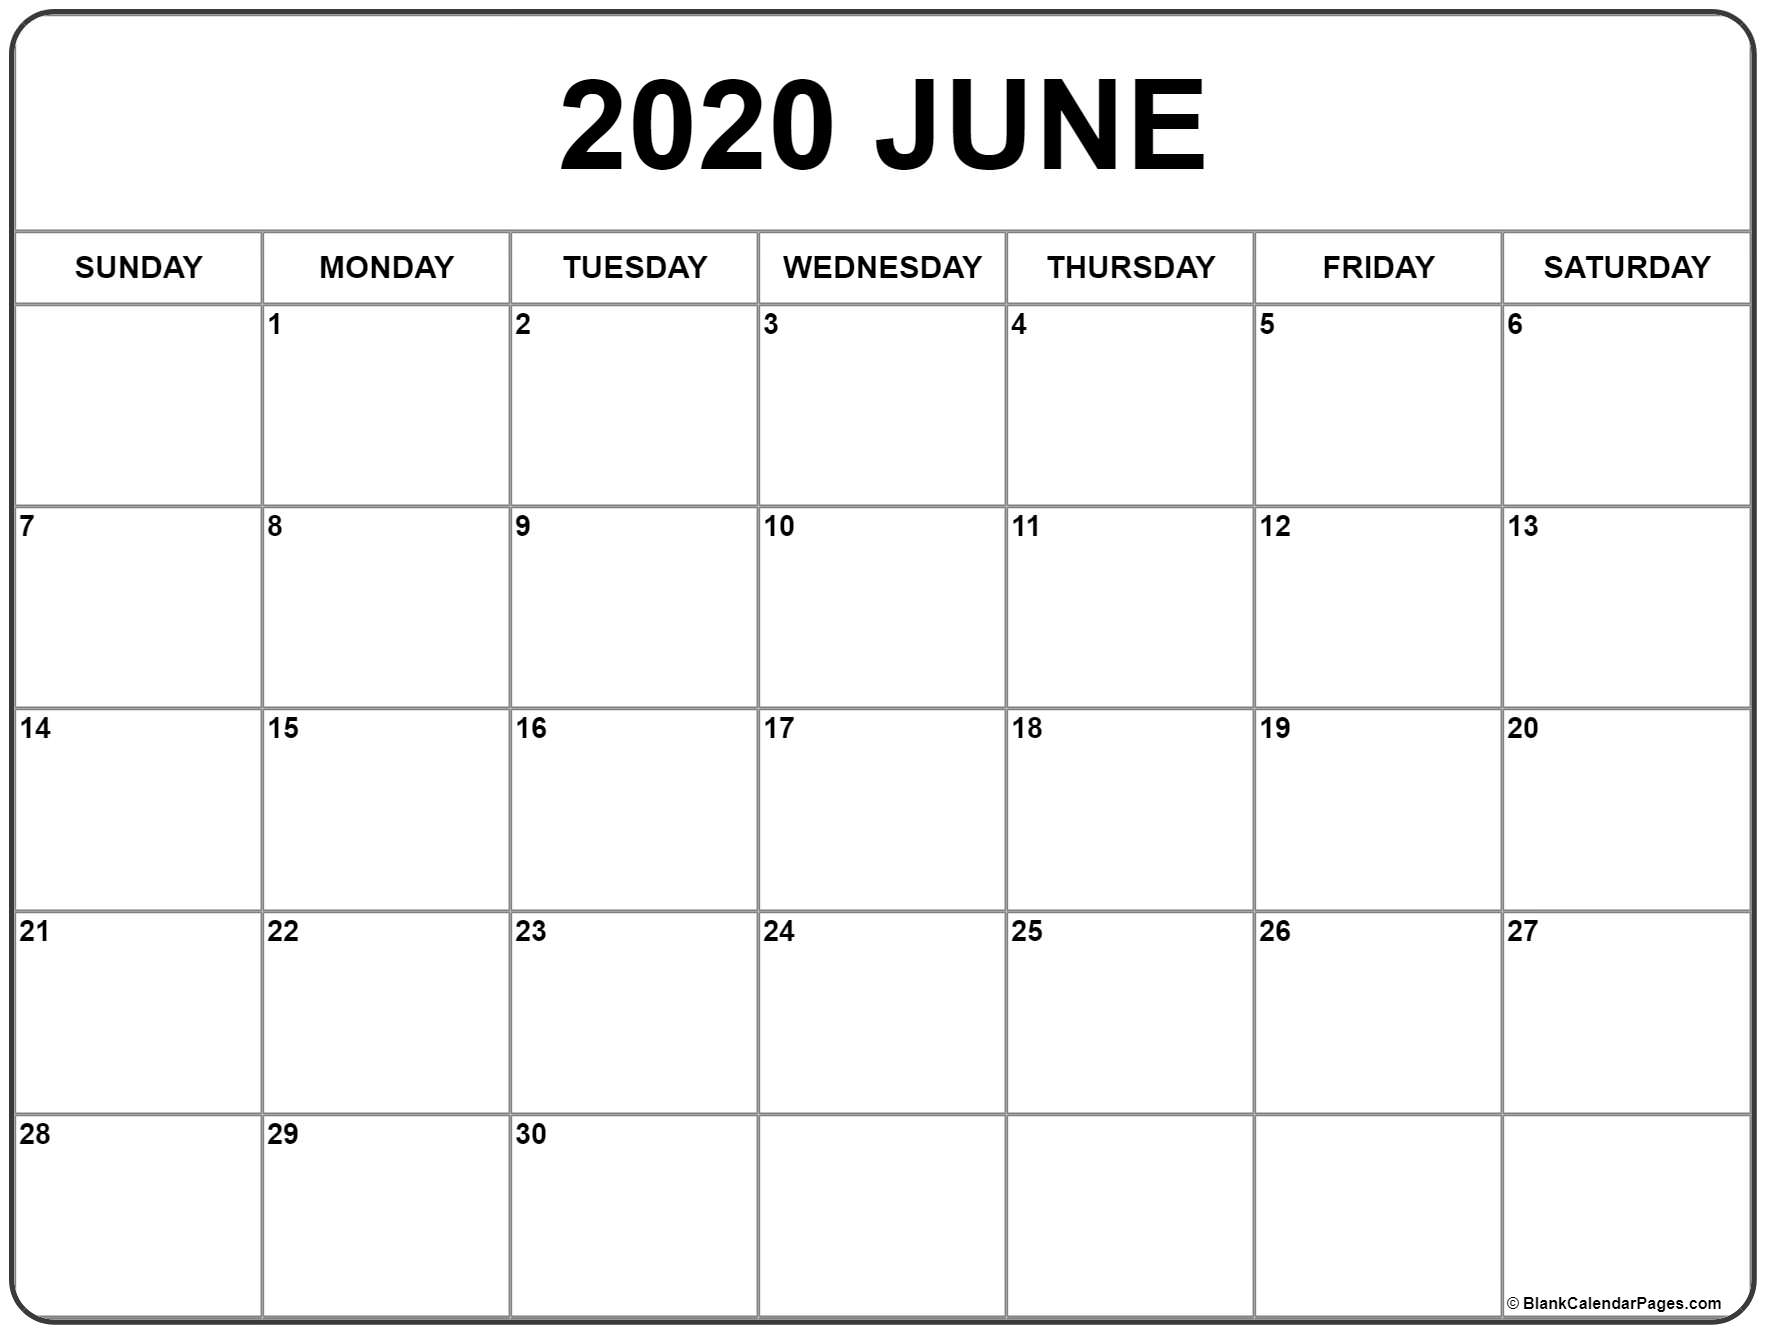 June 2020 Calendar | Free Printable Monthly Calendars with regard to Free Calendar July 2019-June 2020